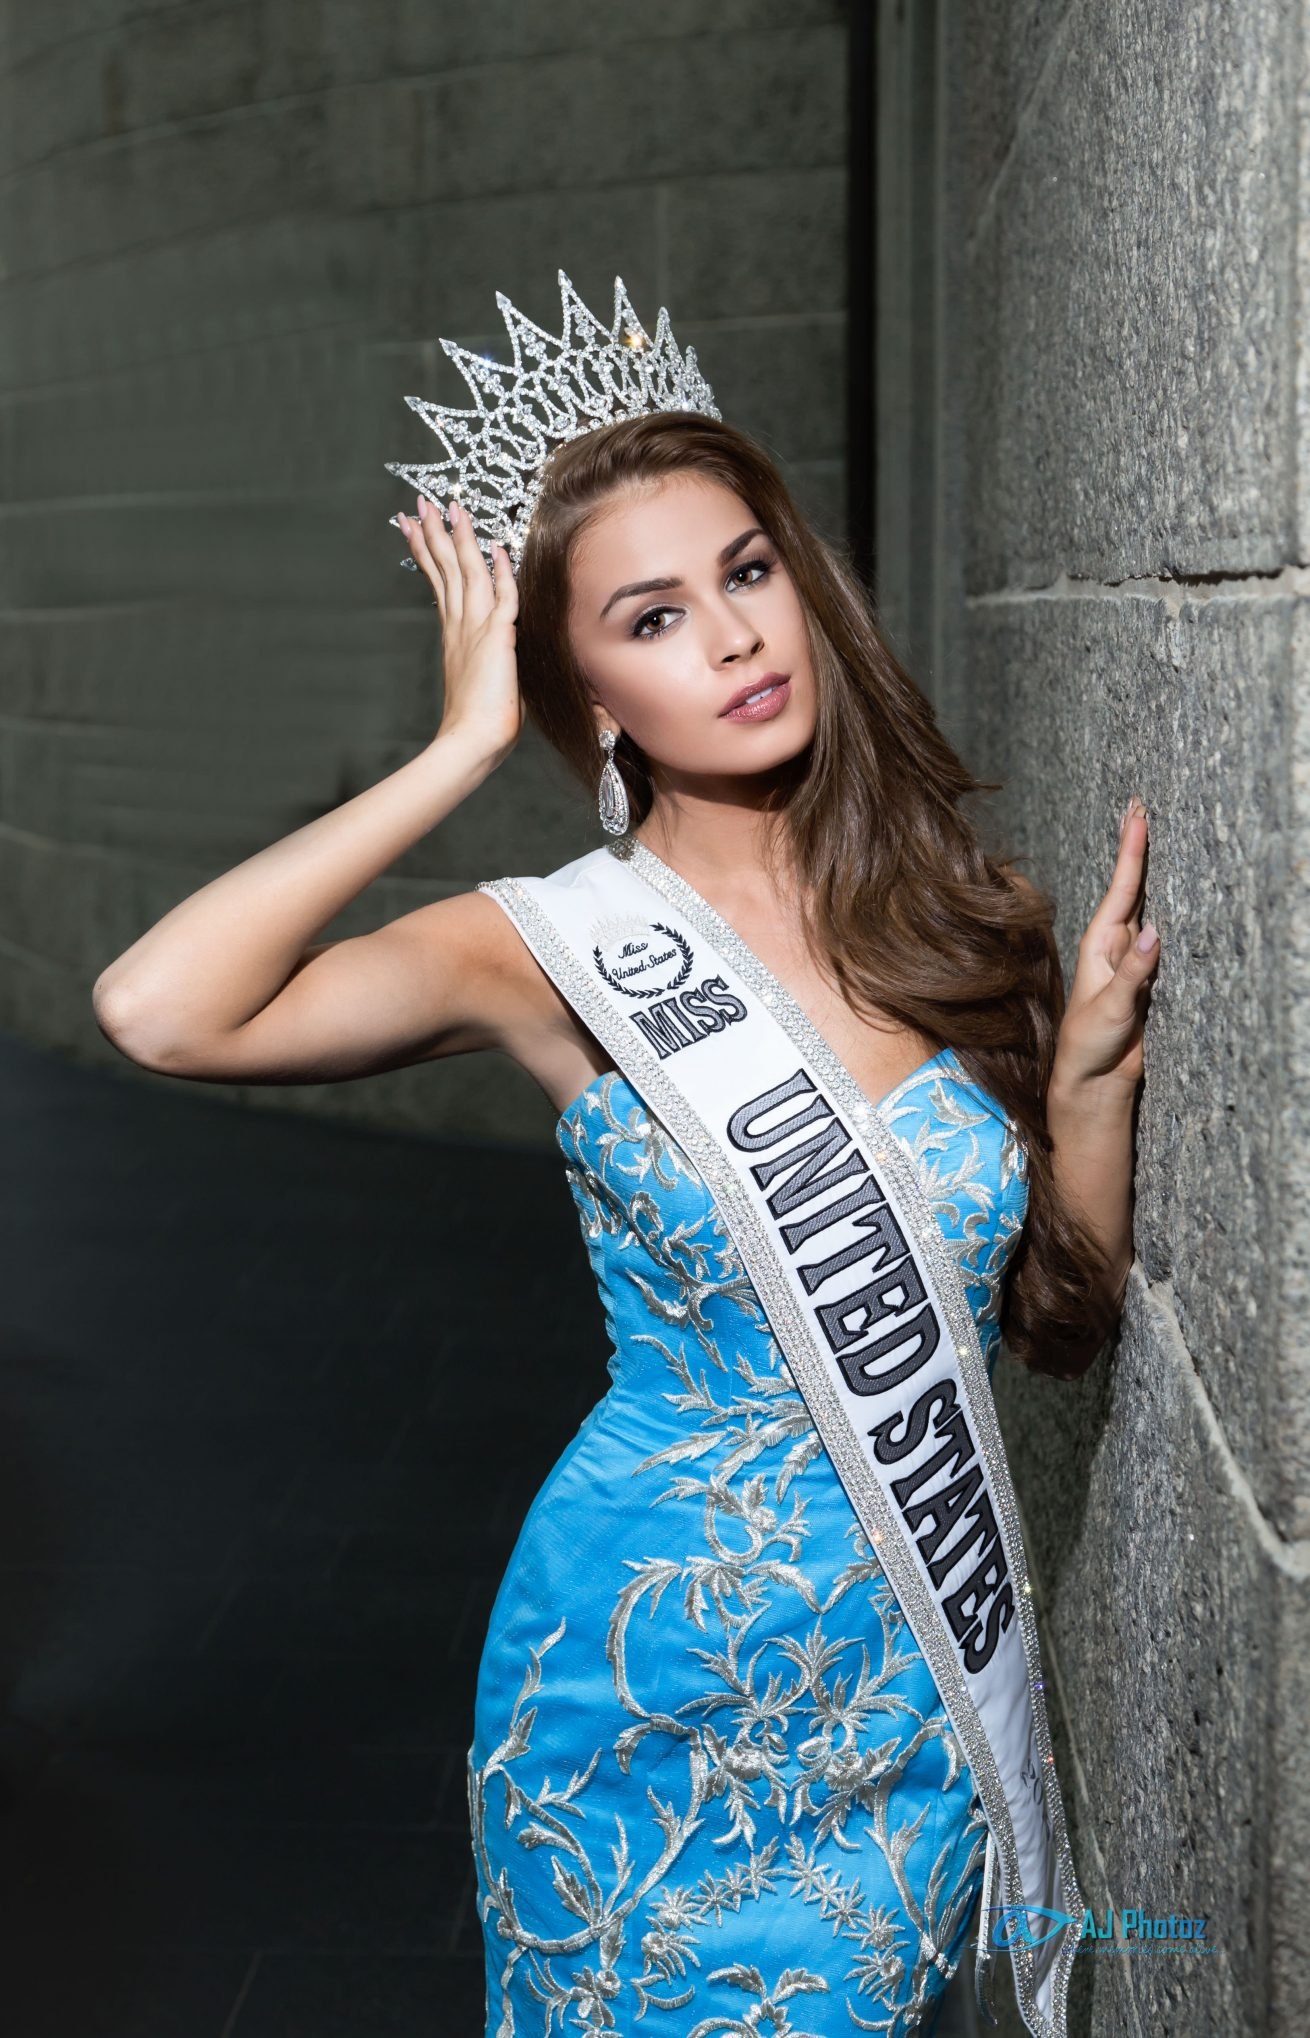 Miss United States 2015 – Summer Priester